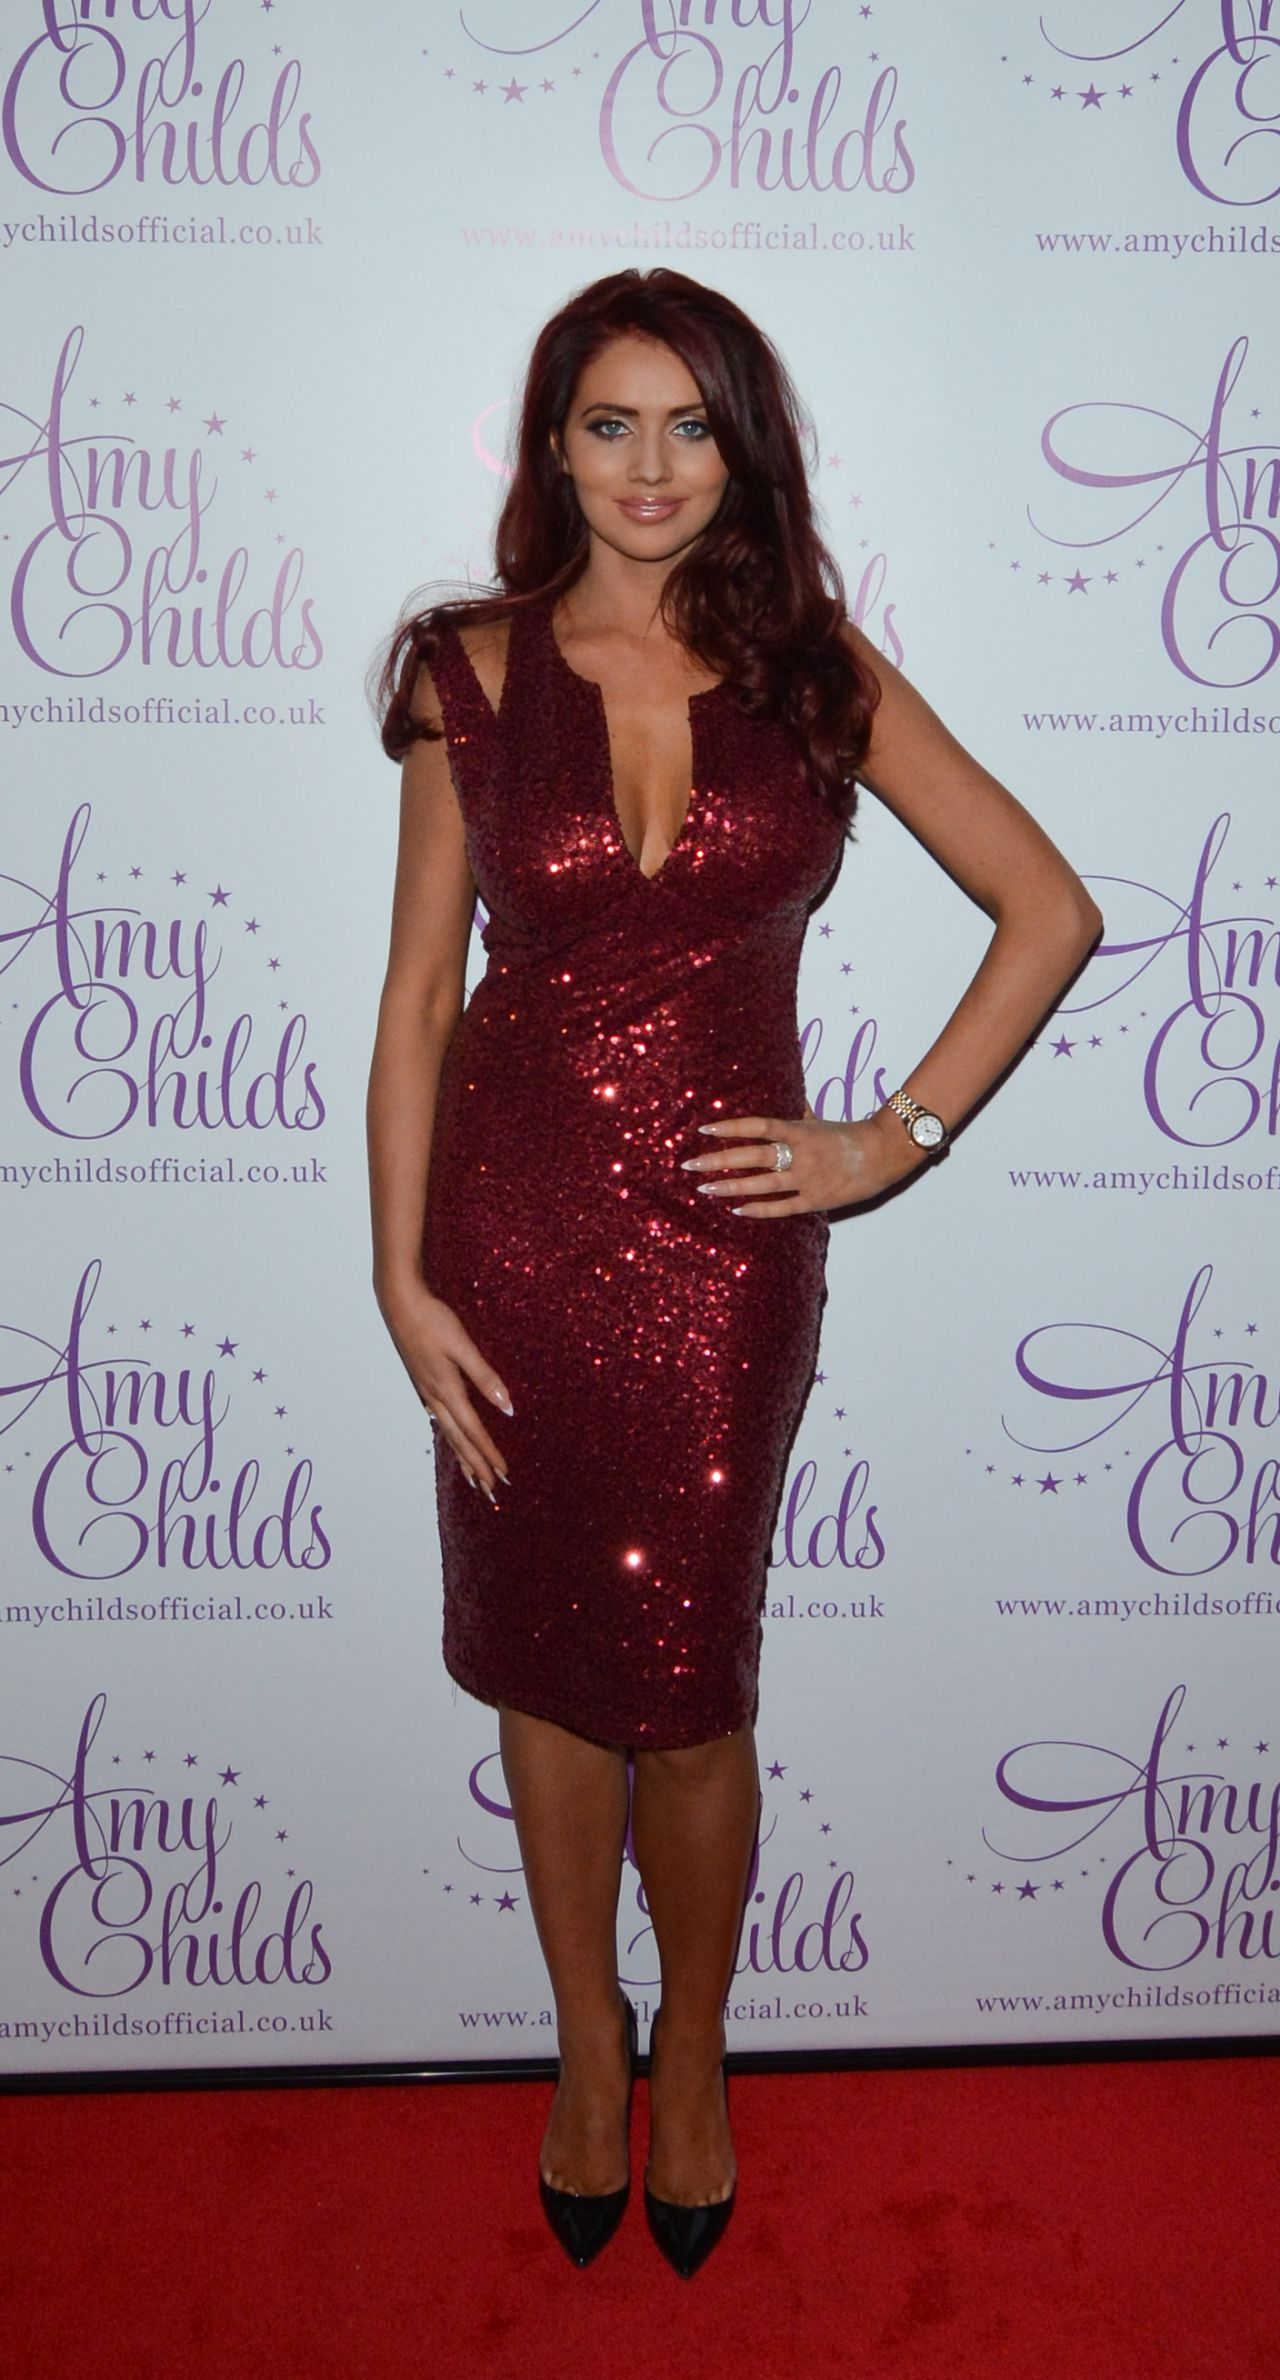 Amy Childs Amy Childs Clothing 2014 Party In London